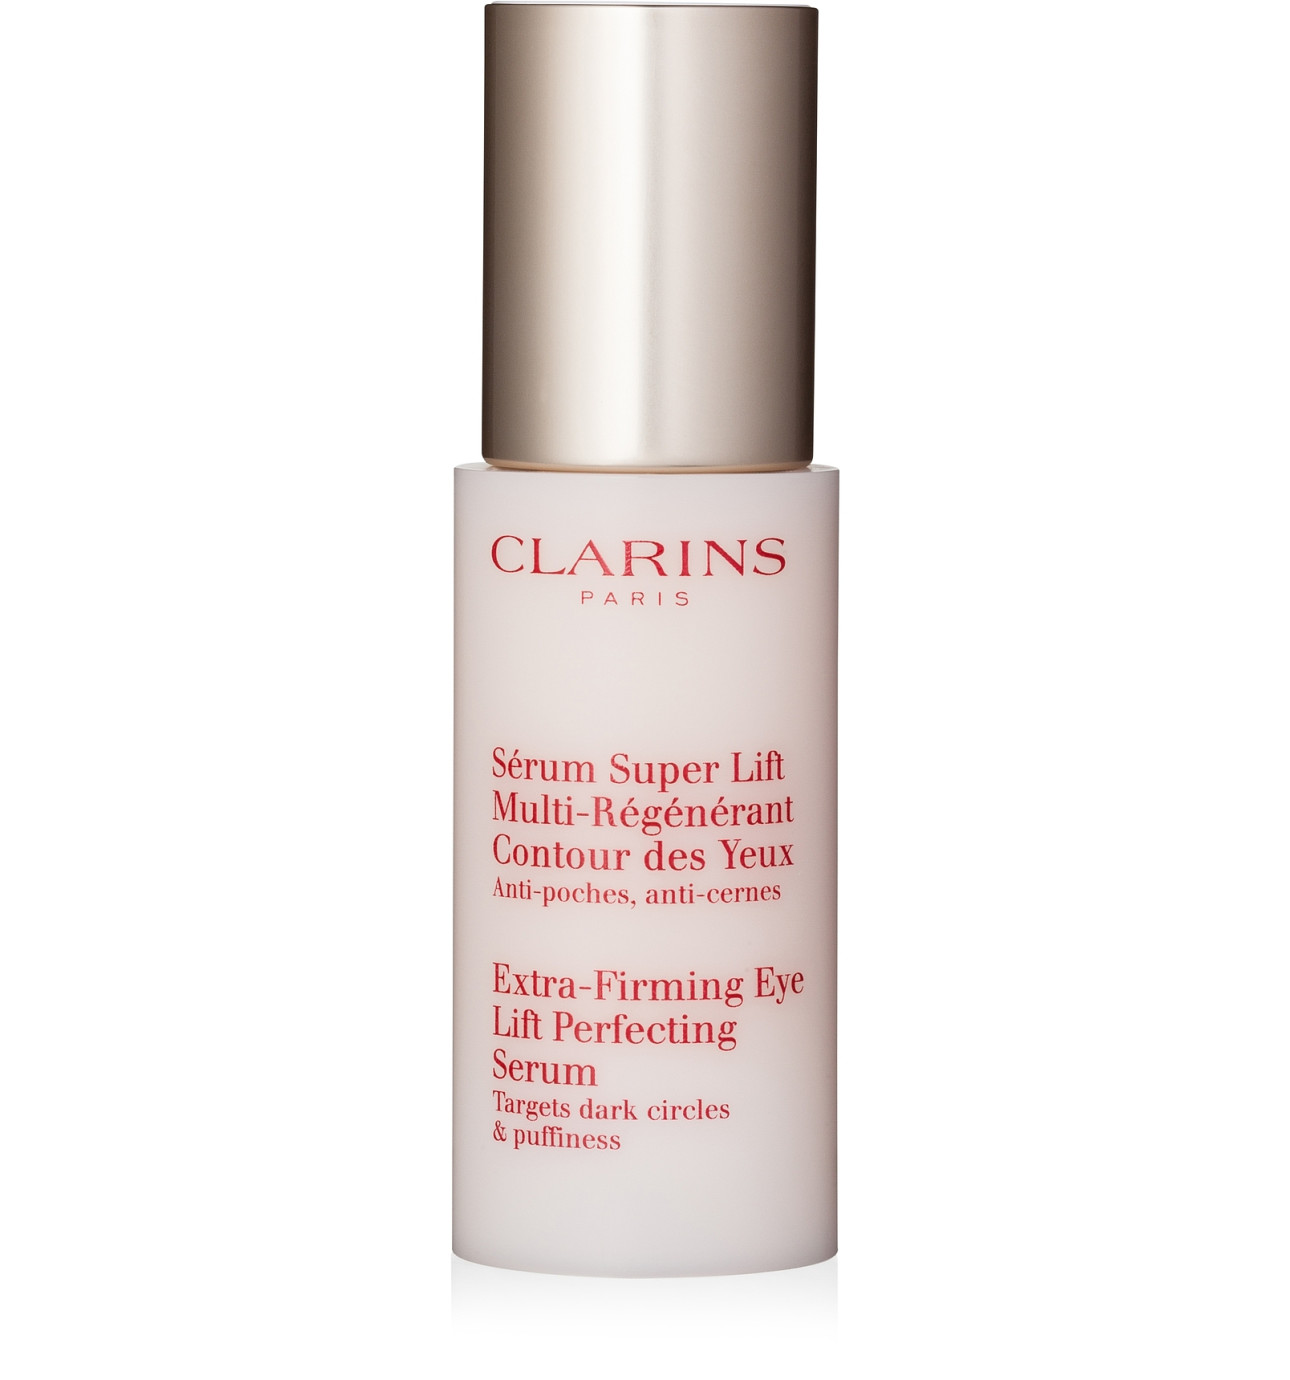 Extra-Firming Eye Lift Perfecting Serum by Clarins #9